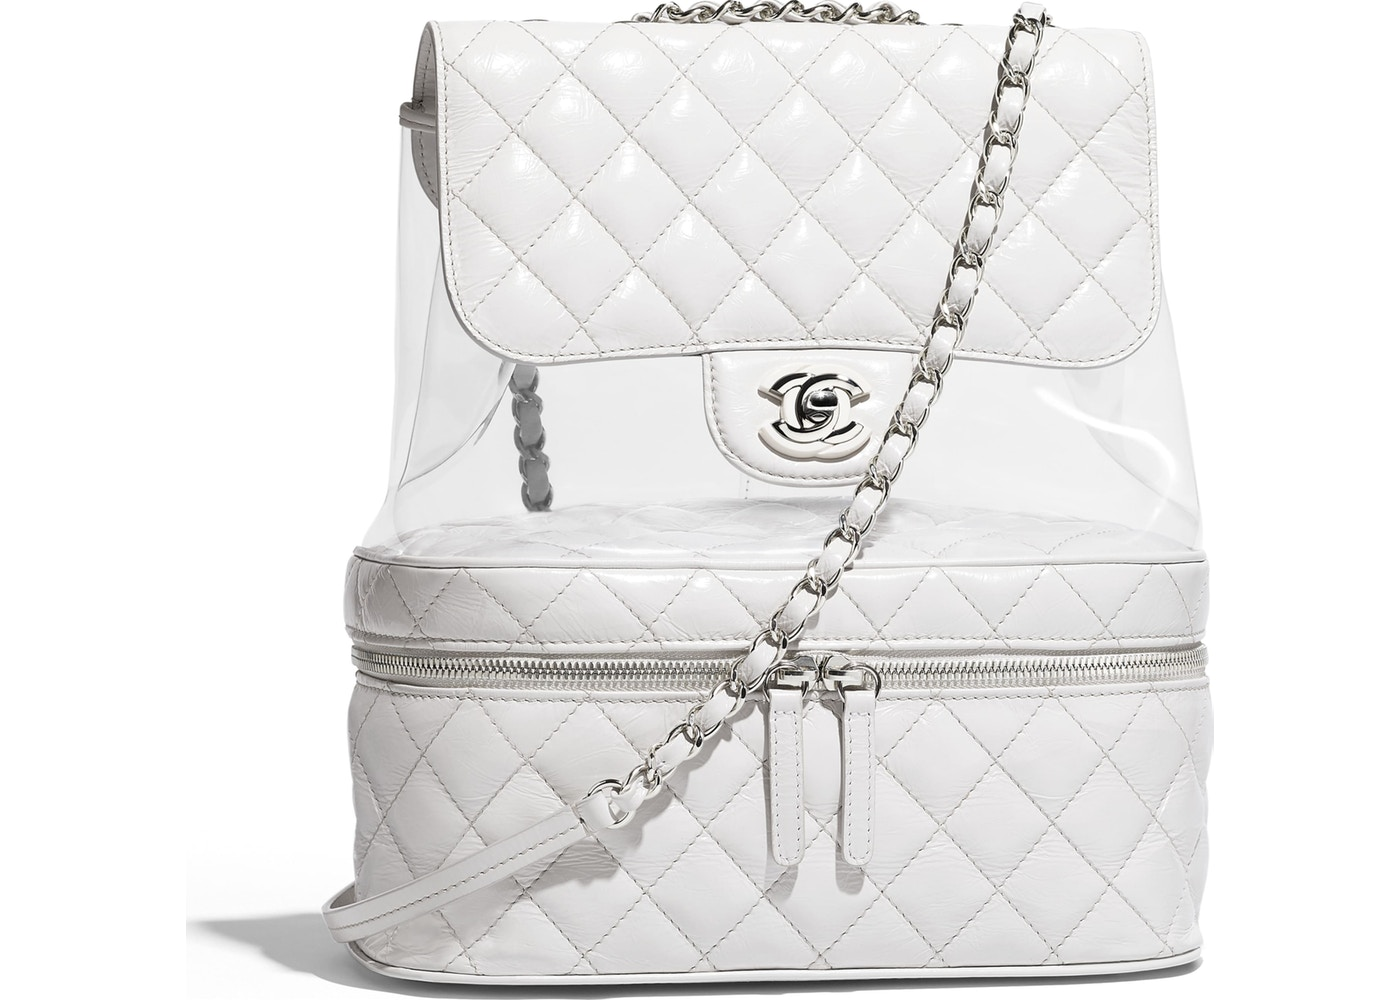 531791deca84 Chanel Flap Bag Transparent White. Transparent White